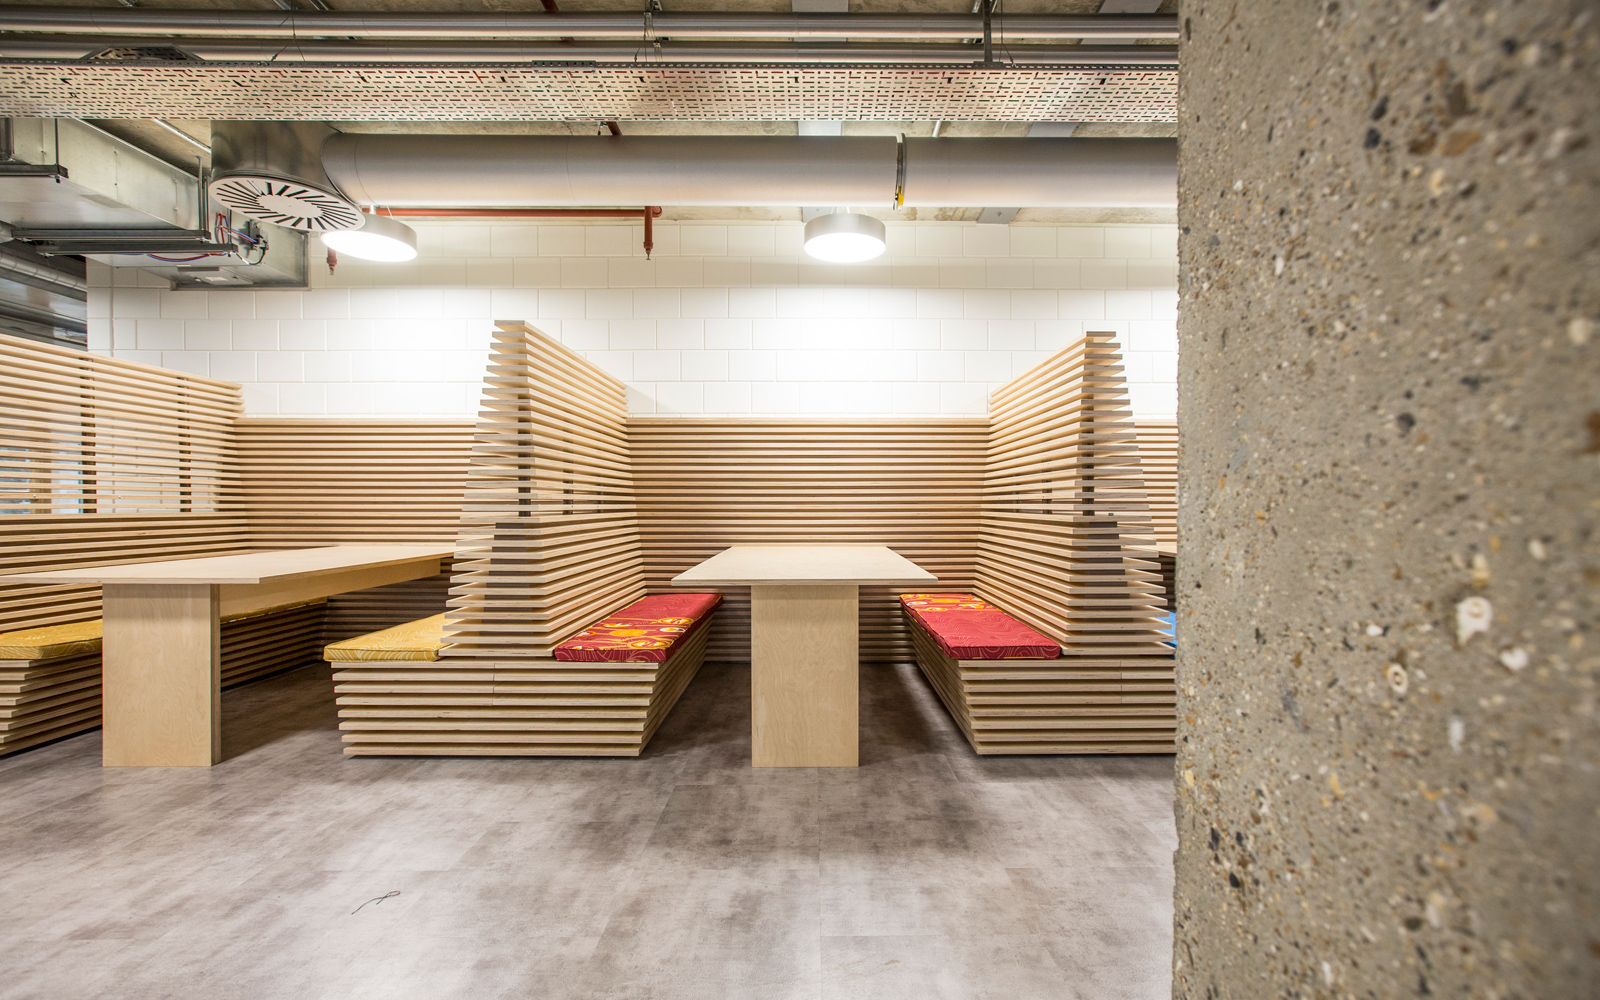 Breakout booths made from slatted plywood